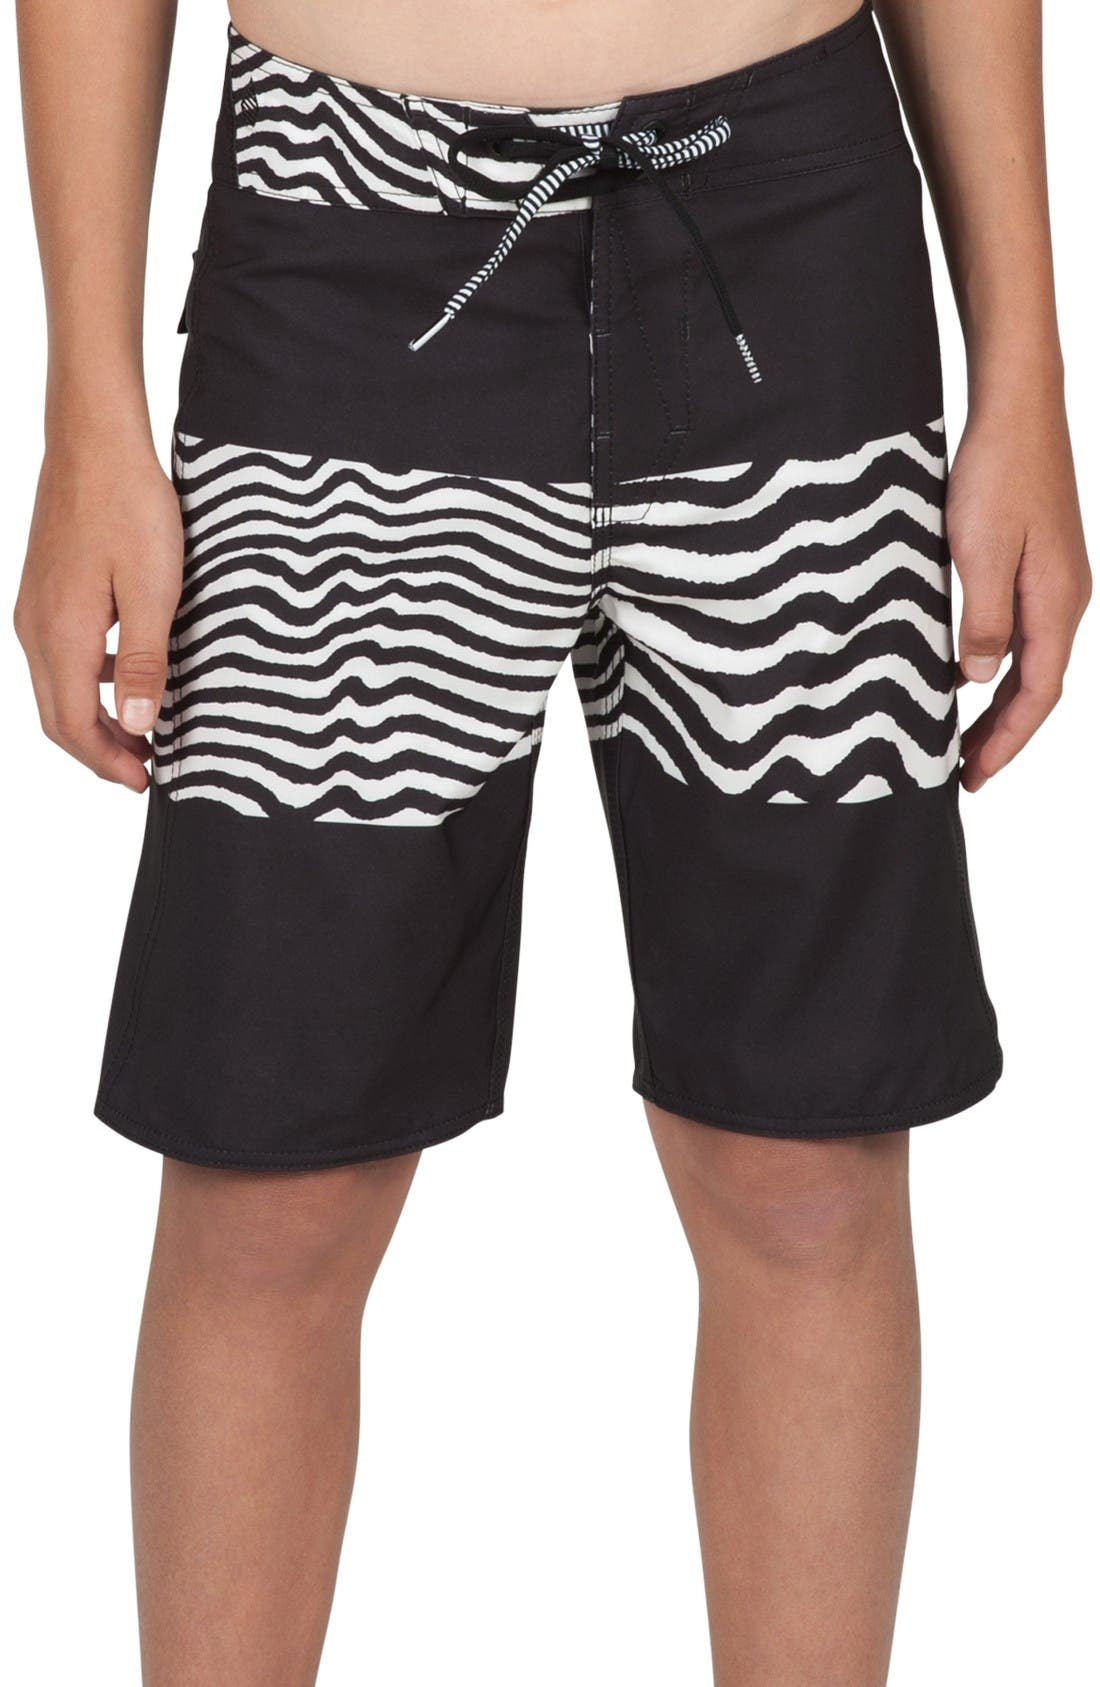 Macaw Mod Board Shorts,                         Main,                         color, Black/ White